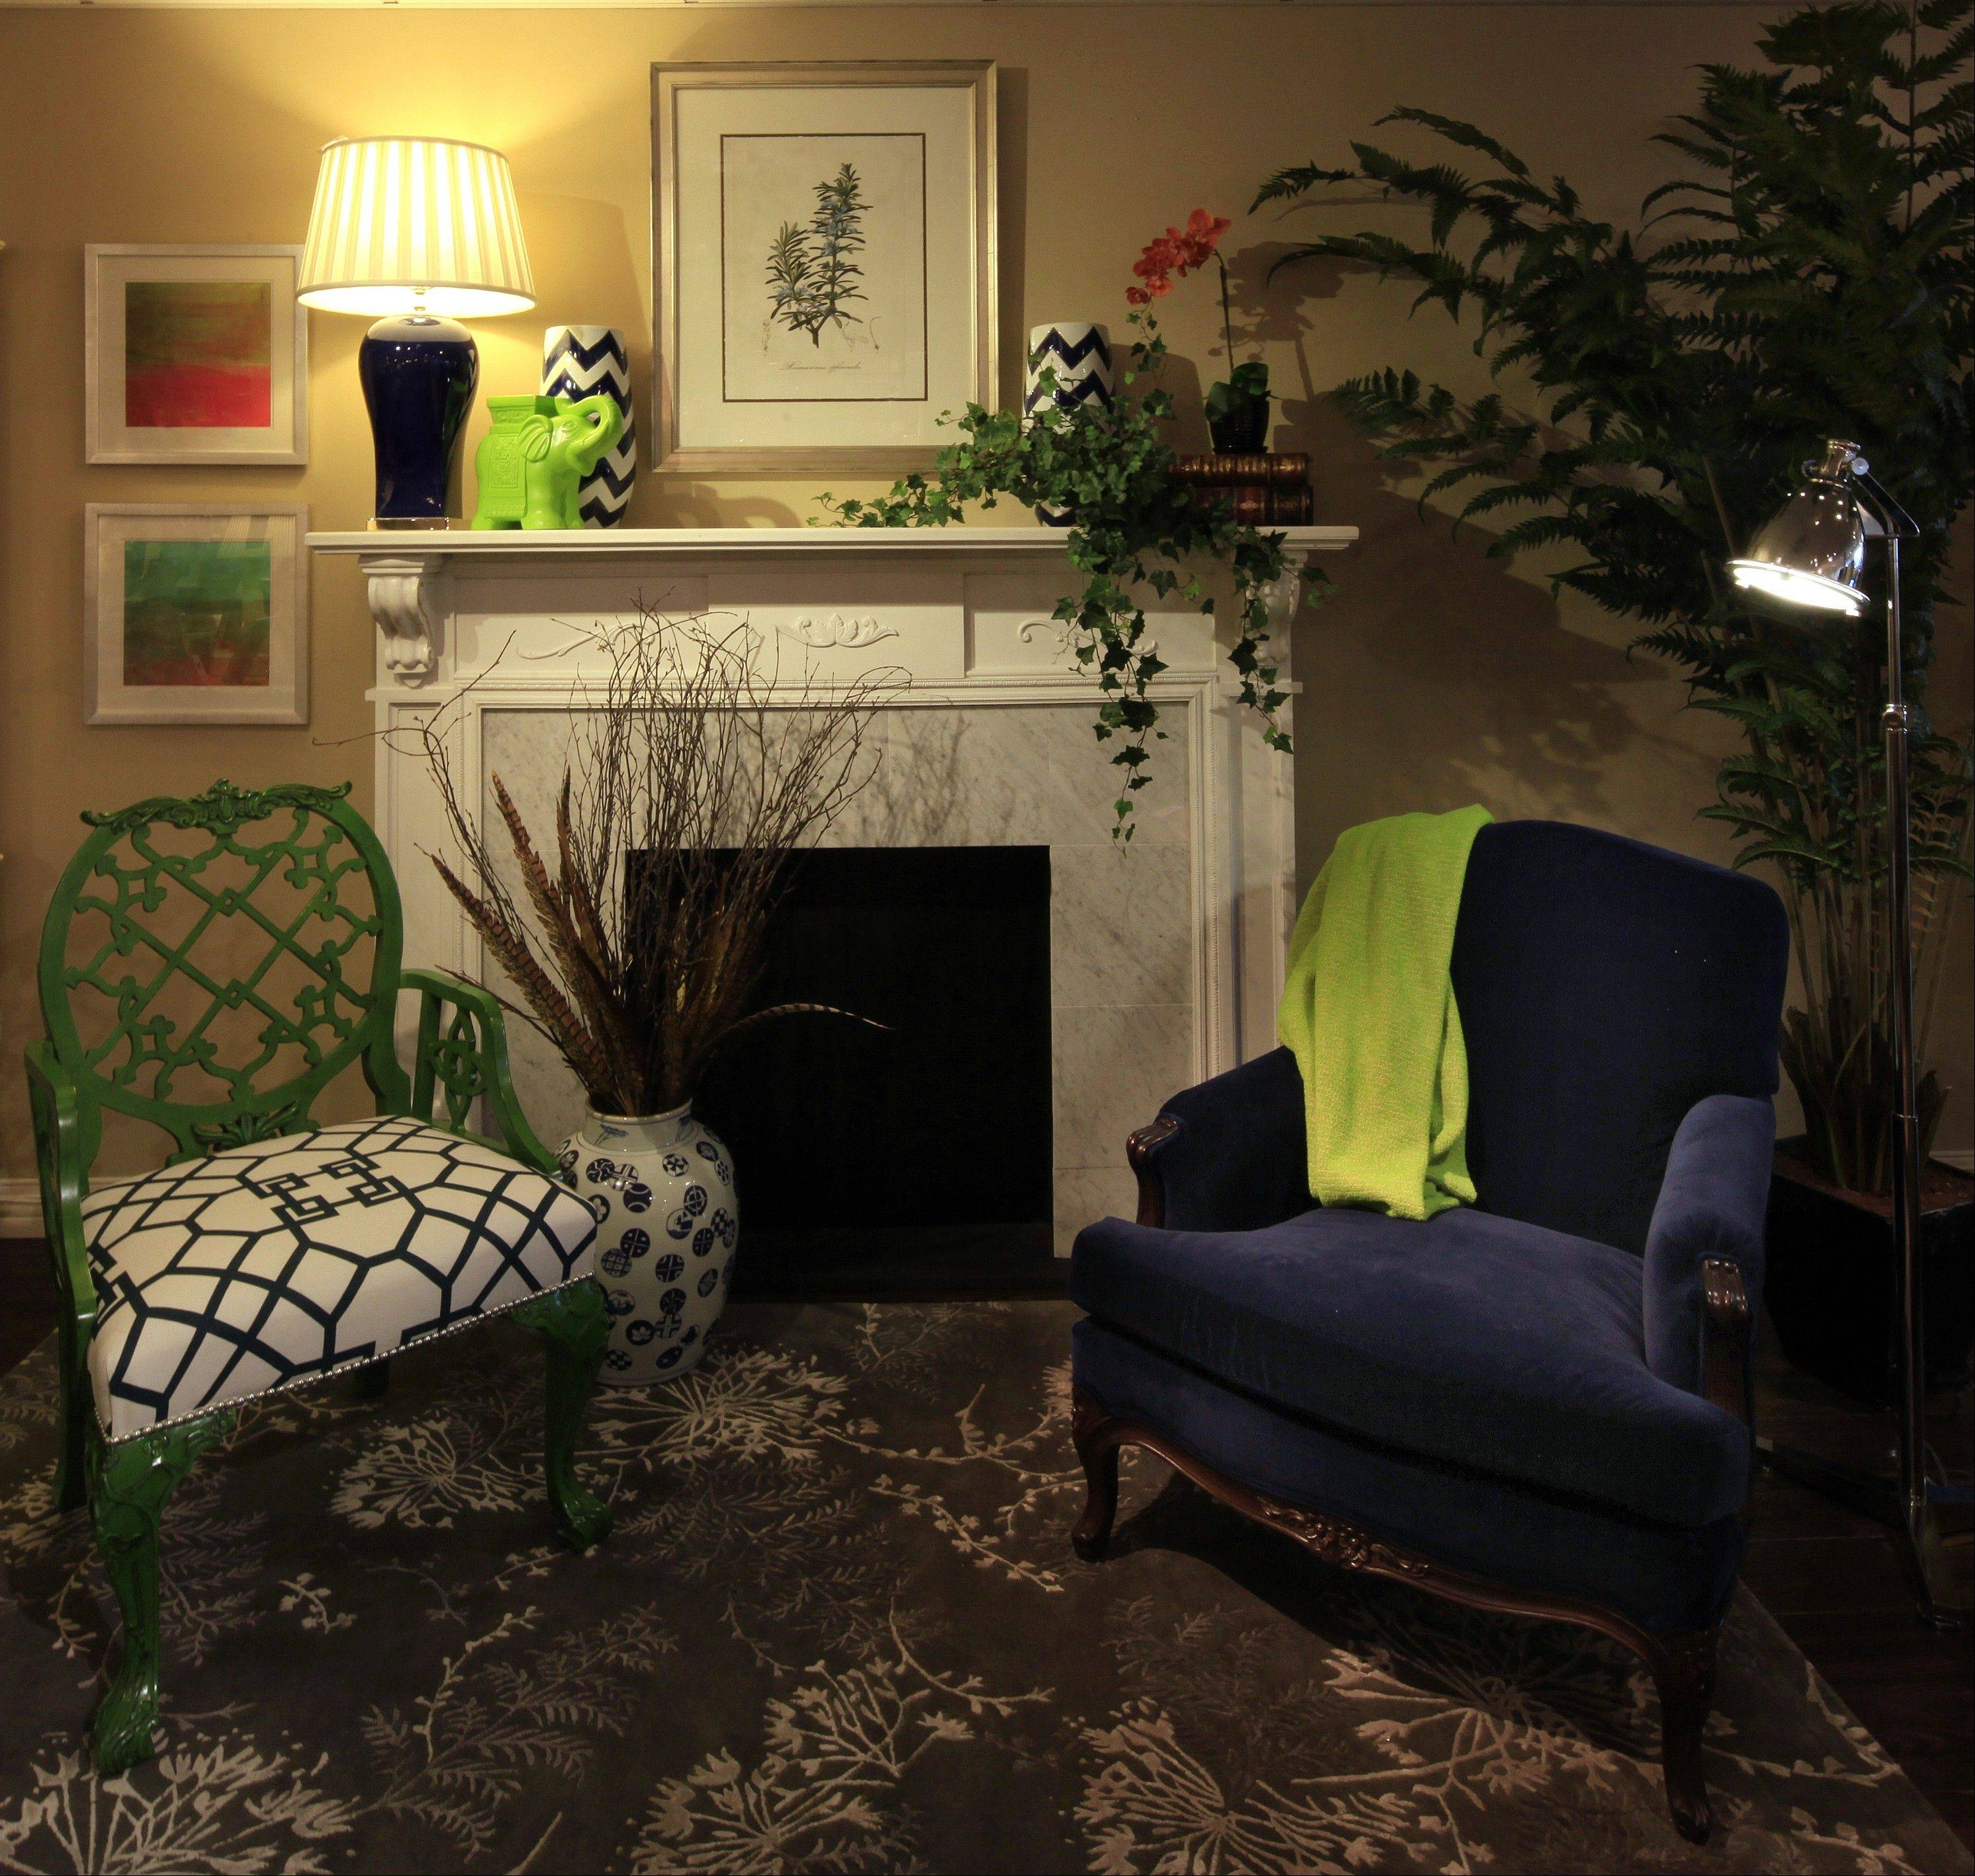 A cozy winter scene at Gabberts in the Galleria in Edina, Minn. Give your house a new look for the new year.